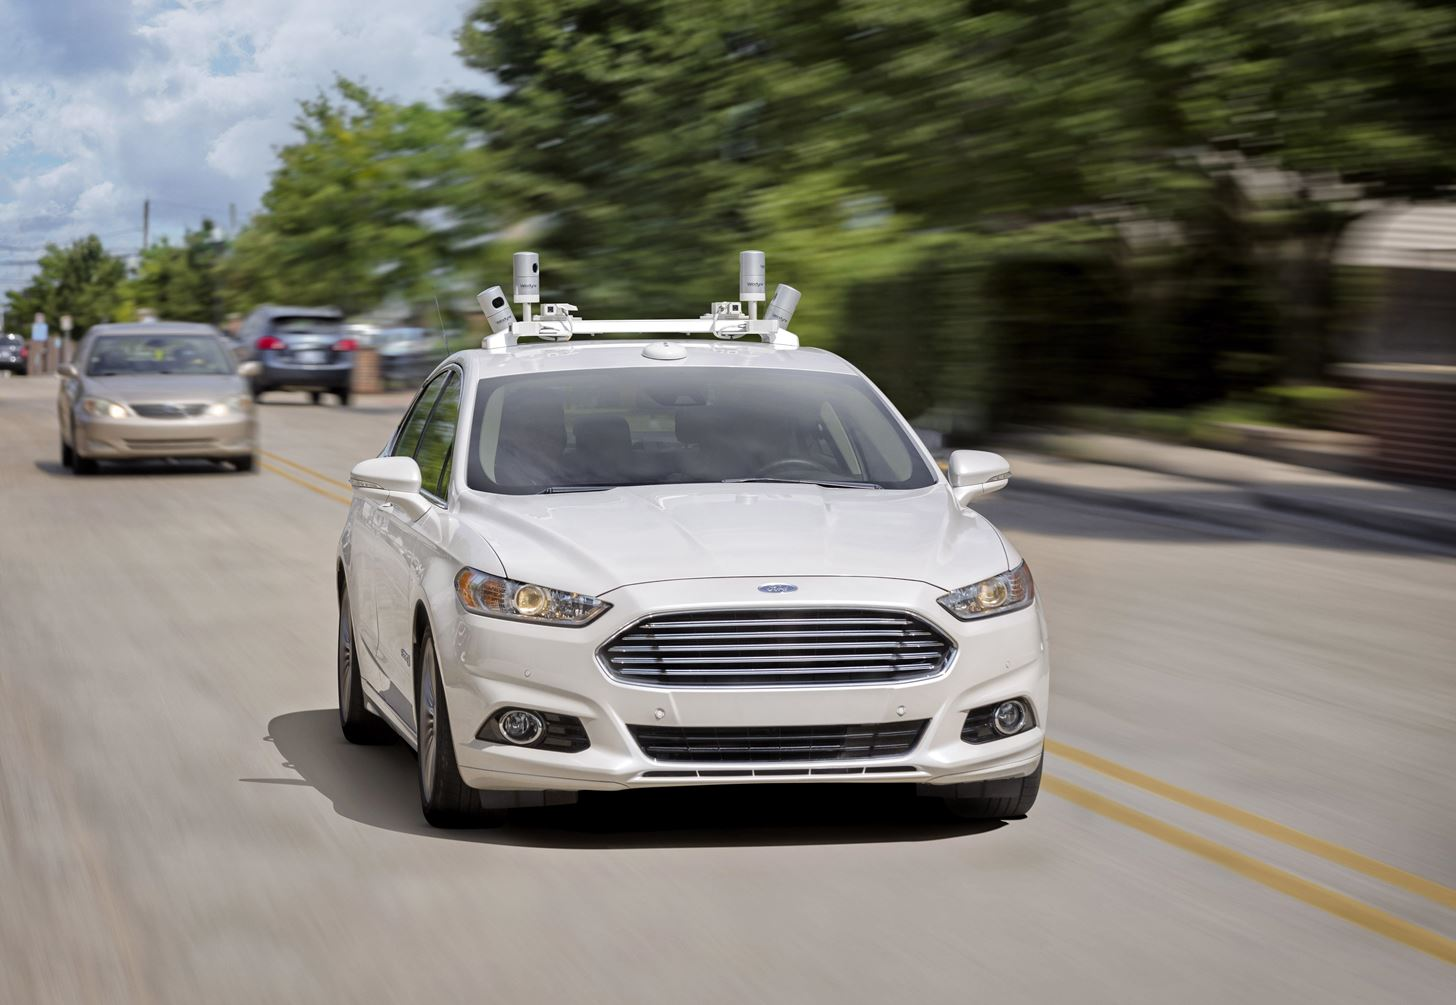 Driverless Vehicles Are Really Coming—If You're Getting a New Car, Read This First